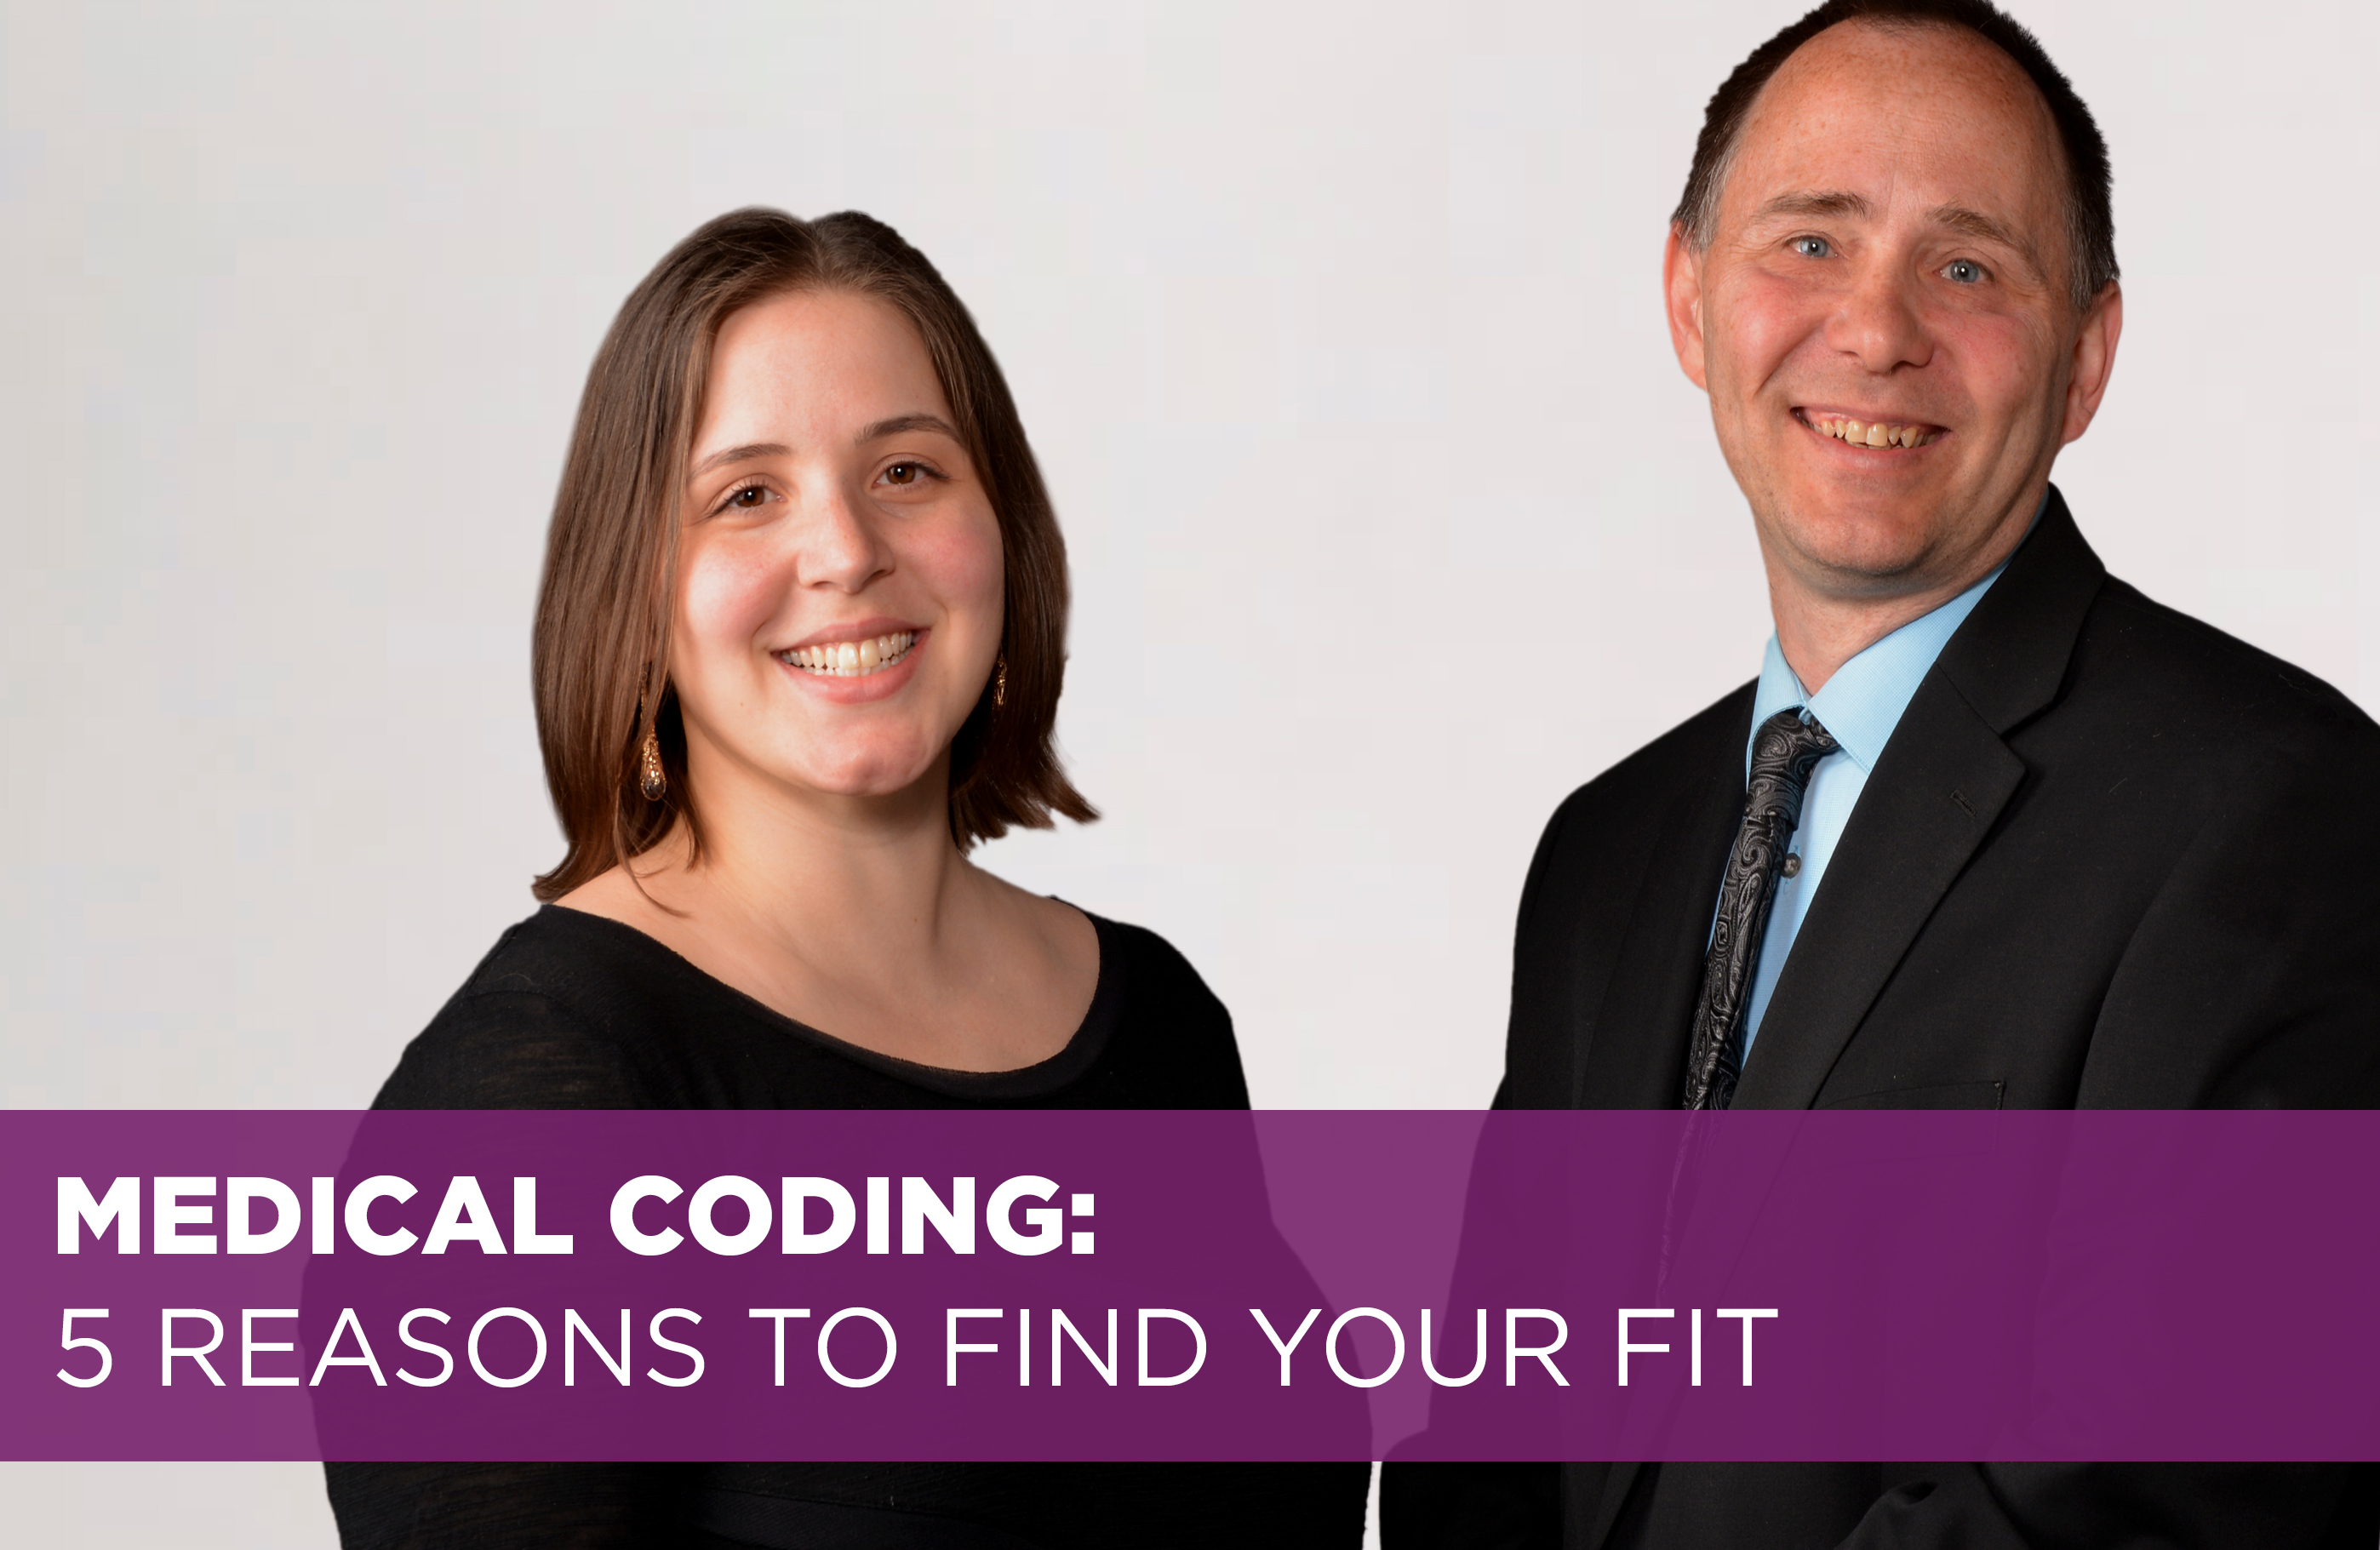 Medical Coding Five Reasons To Find Your Fit